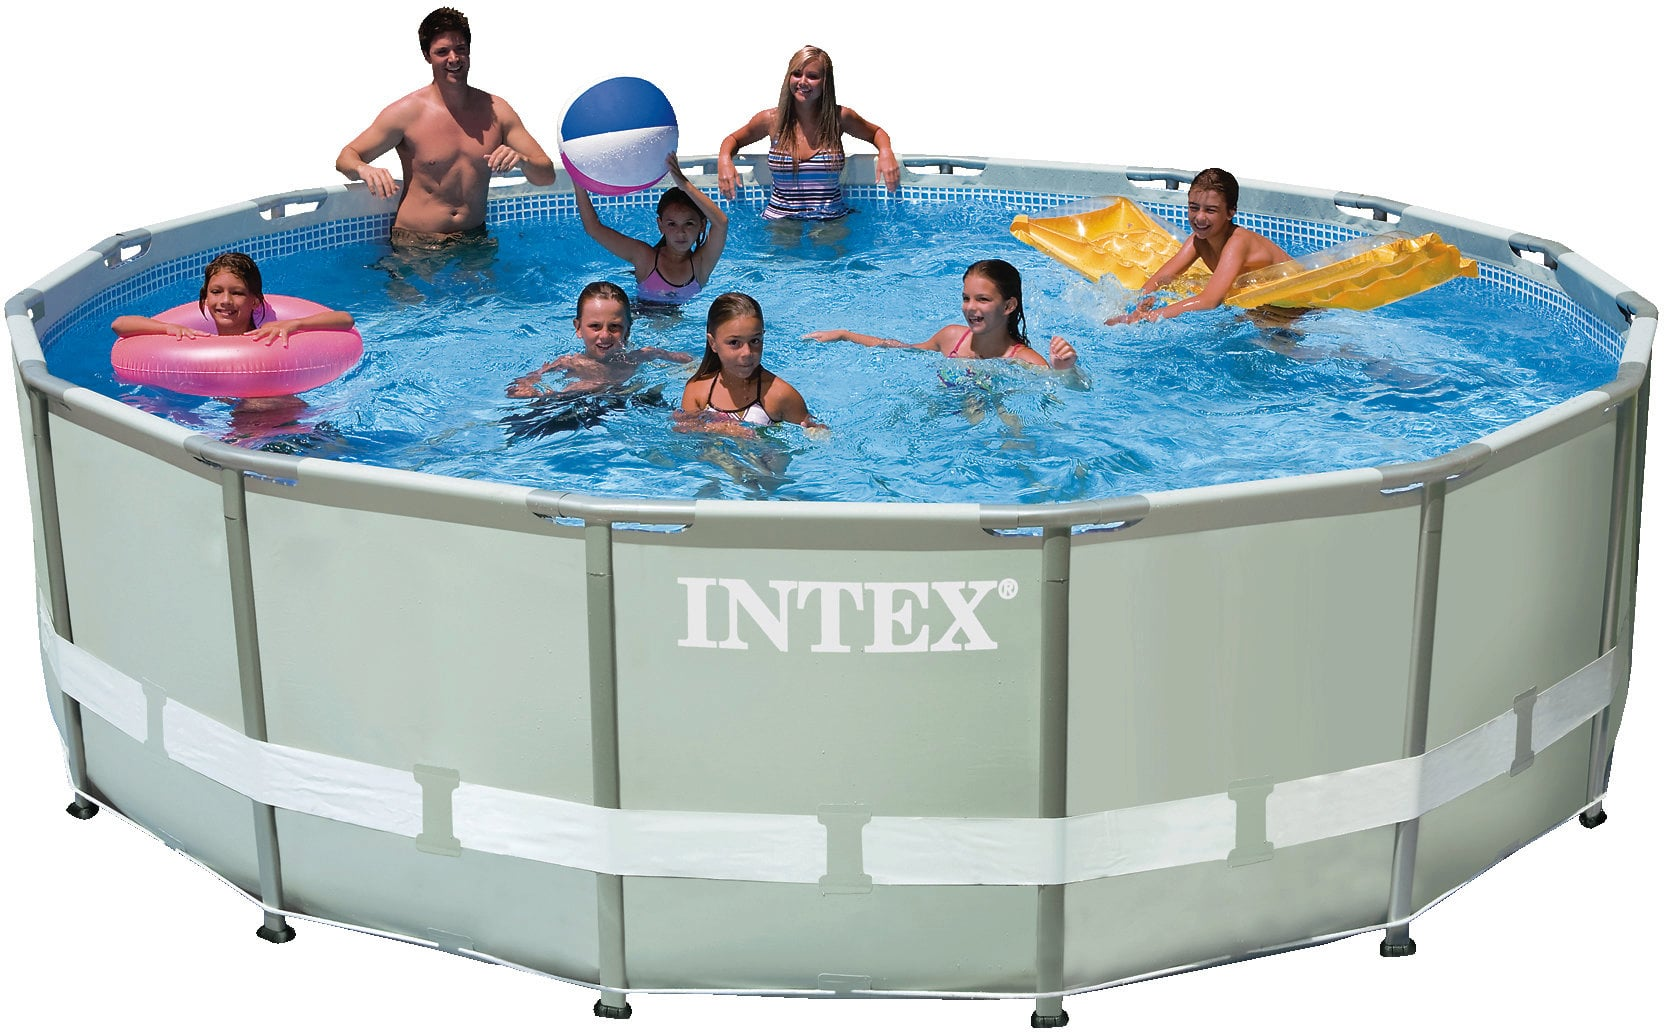 Pool Reinigungsset Amazon Intex Ersatzteile Frame Pool Ultra Rondo Ø 488 X 122 Cm